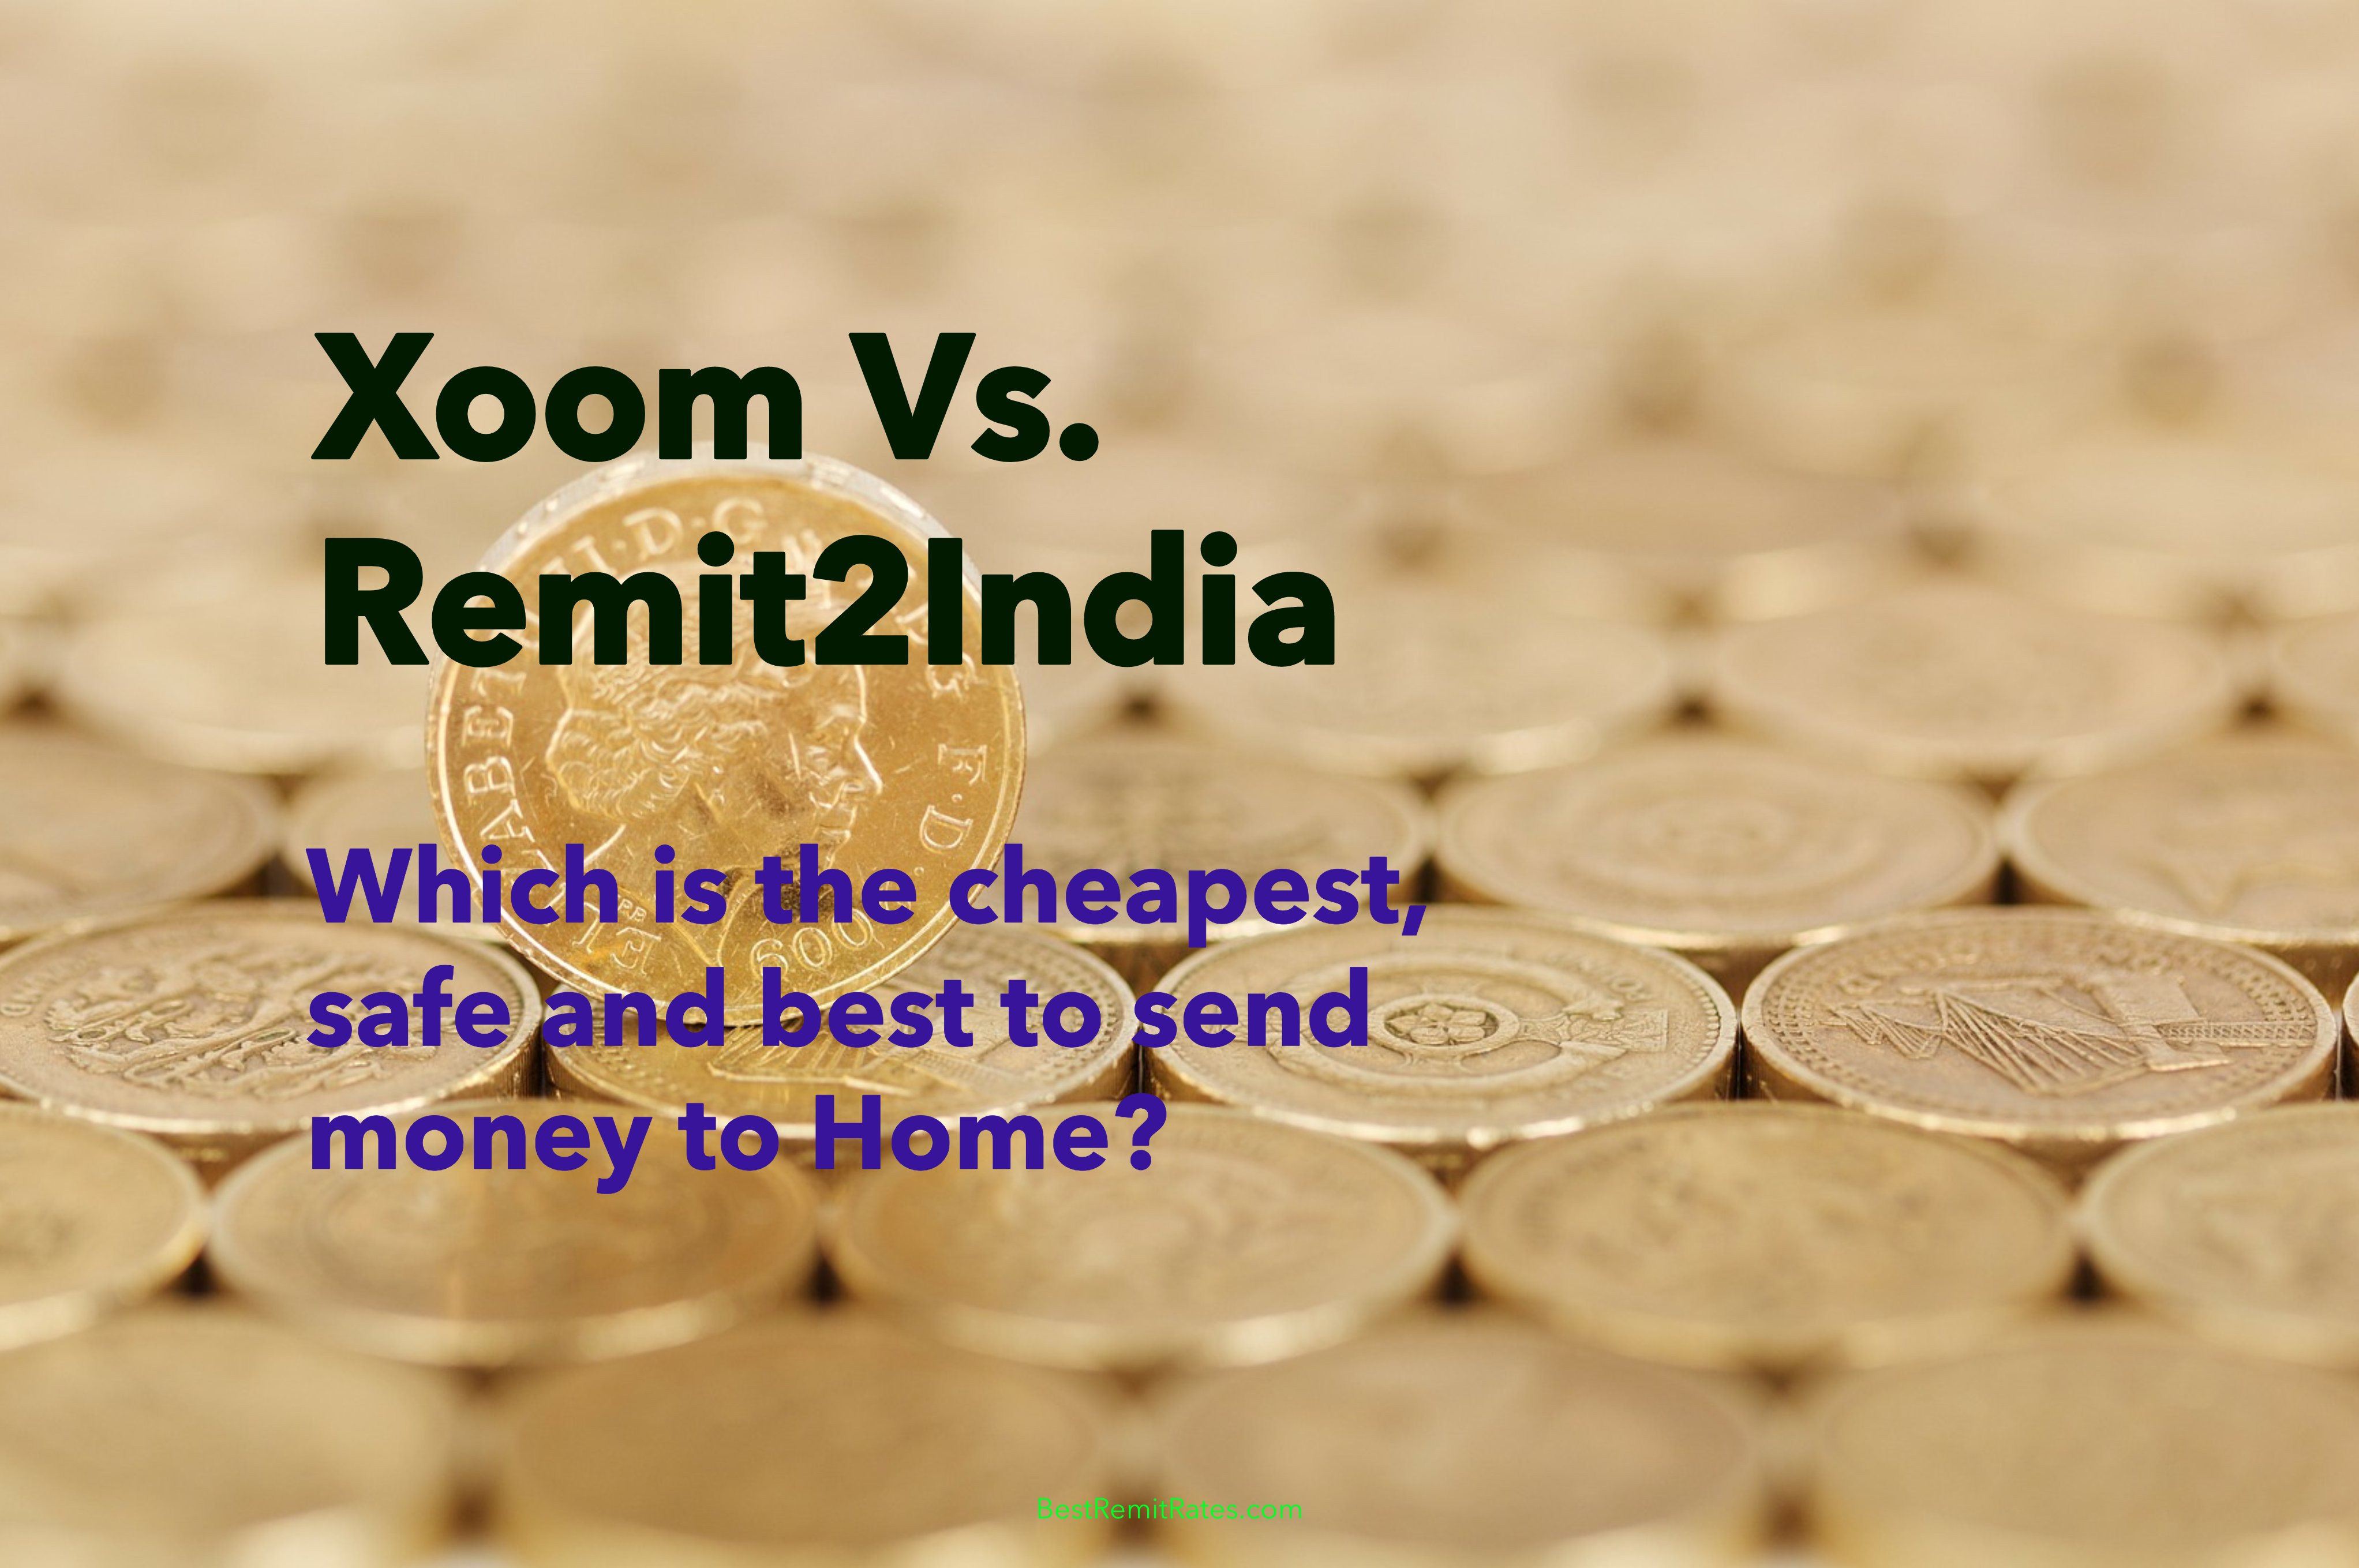 Xoom Vs Remit2india Jan 2020